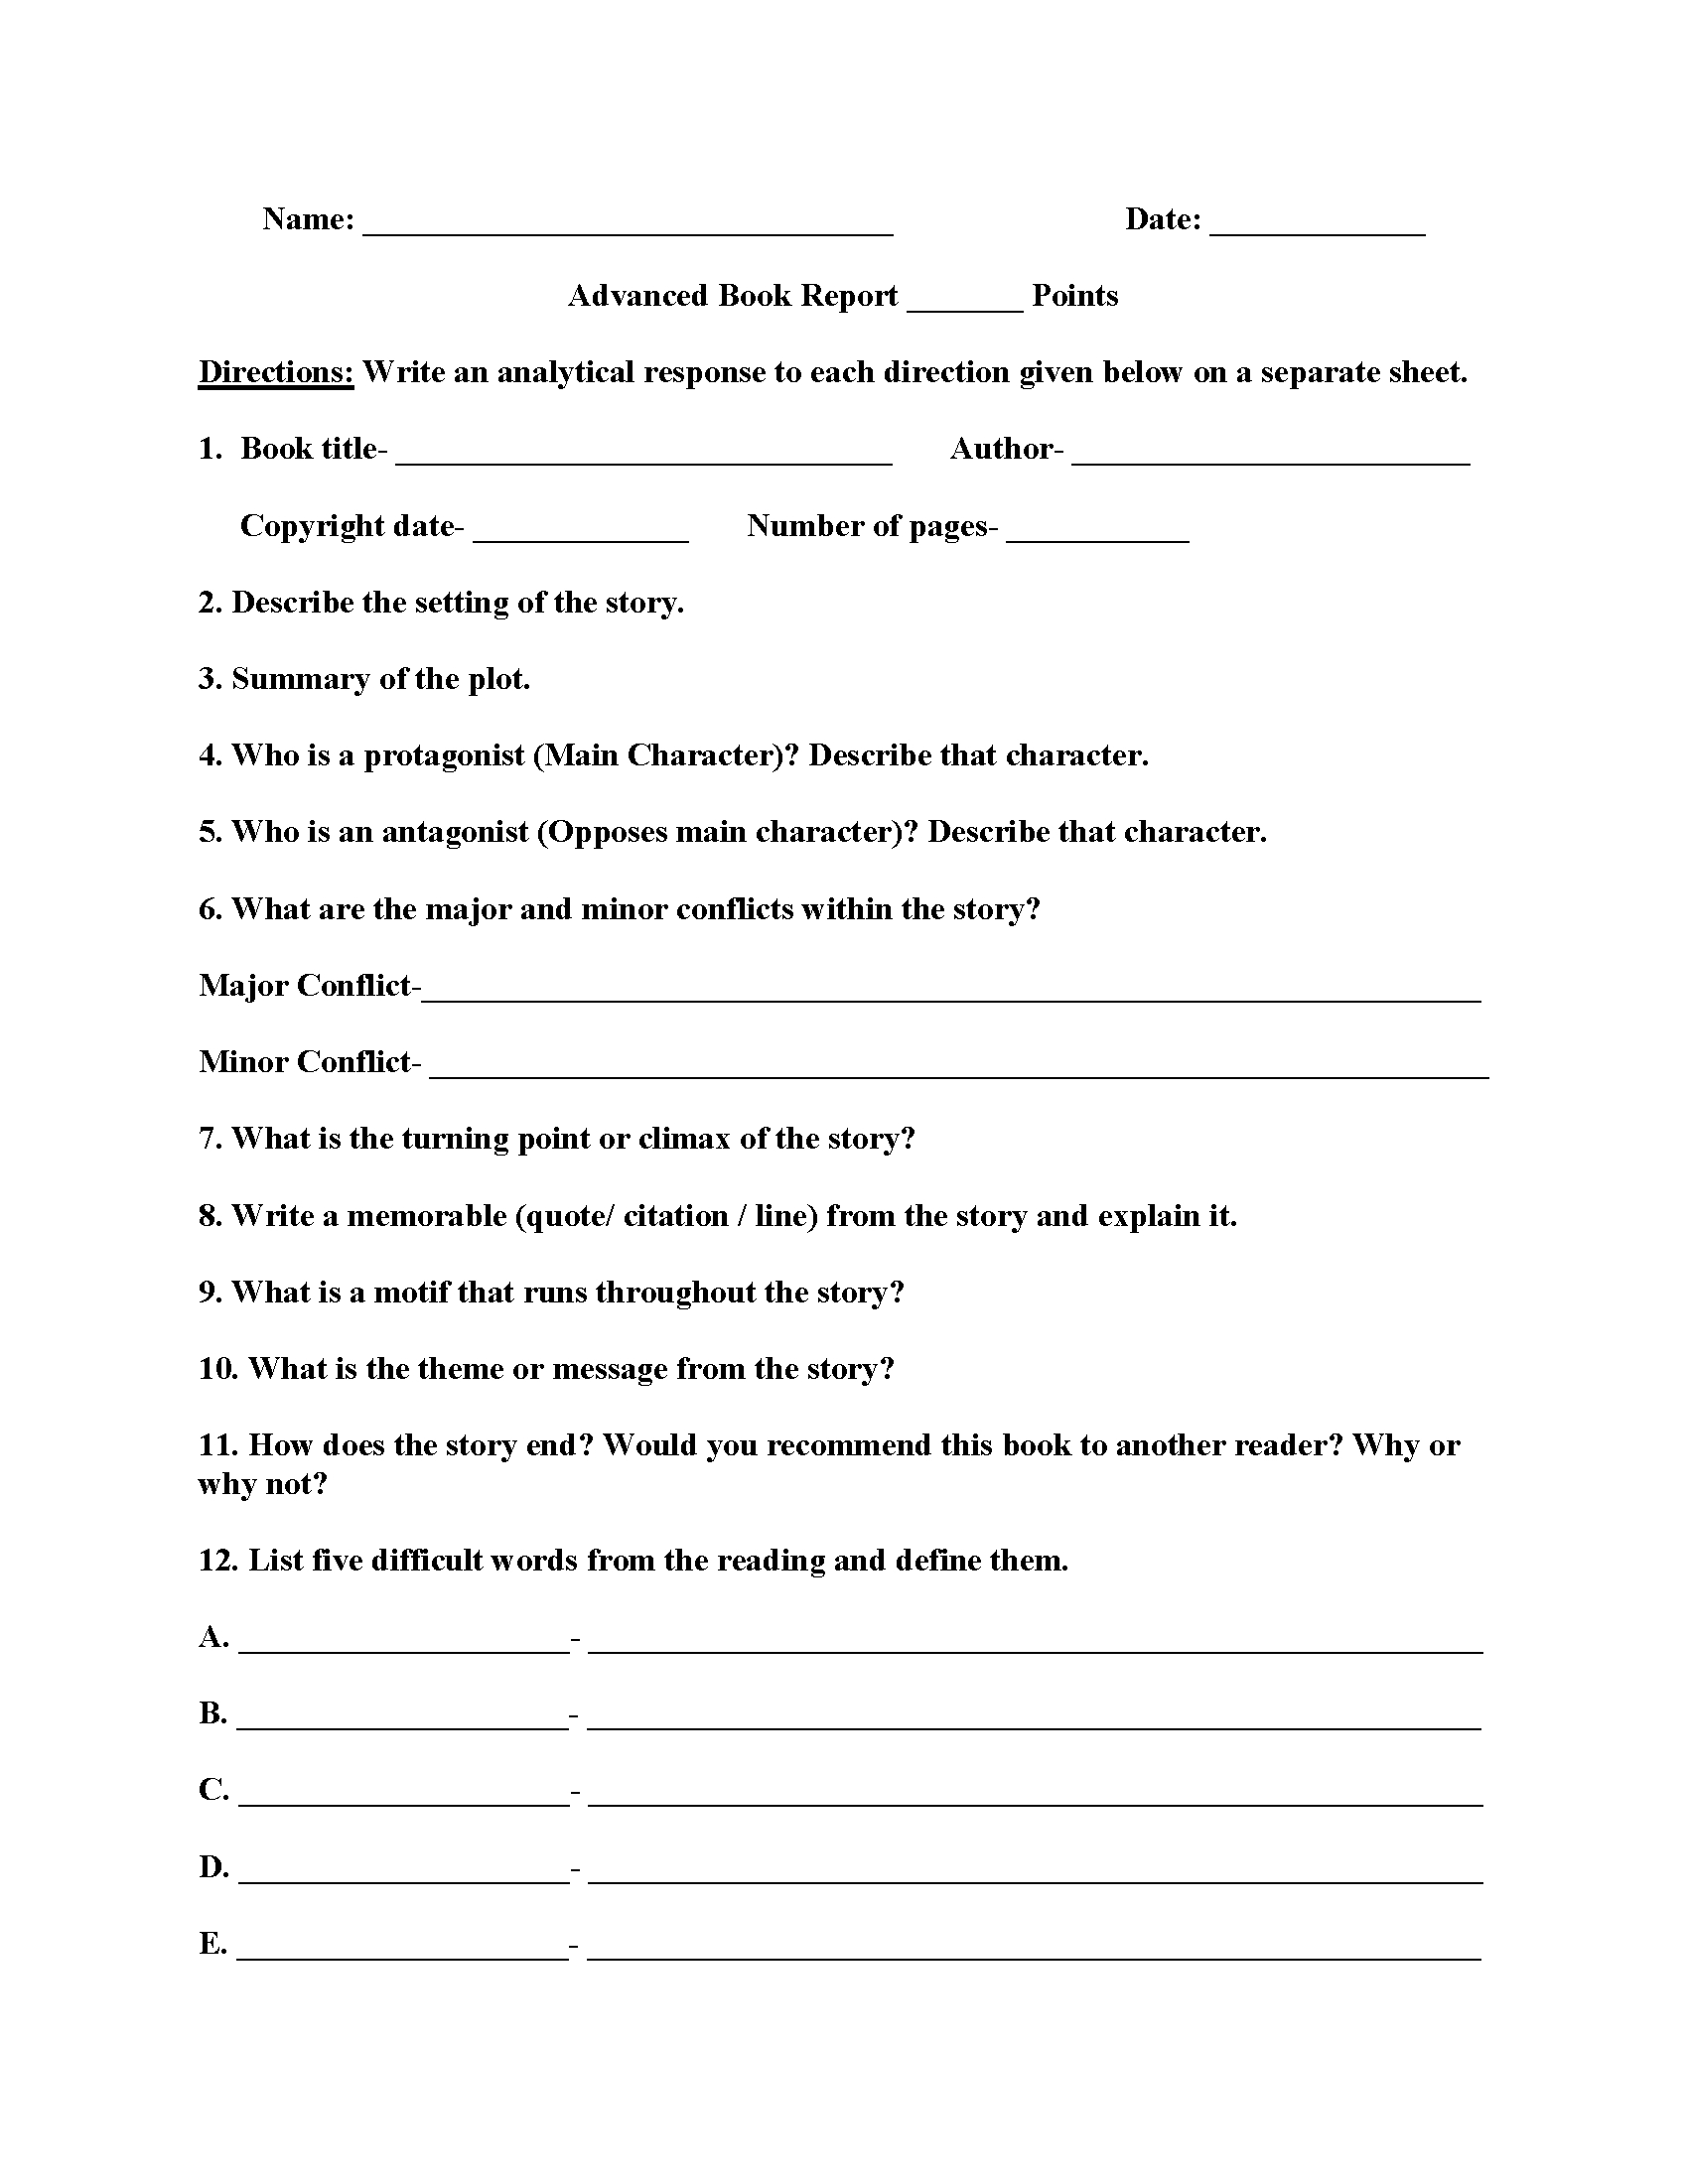 Book Report Form For Non Fiction Worksheet